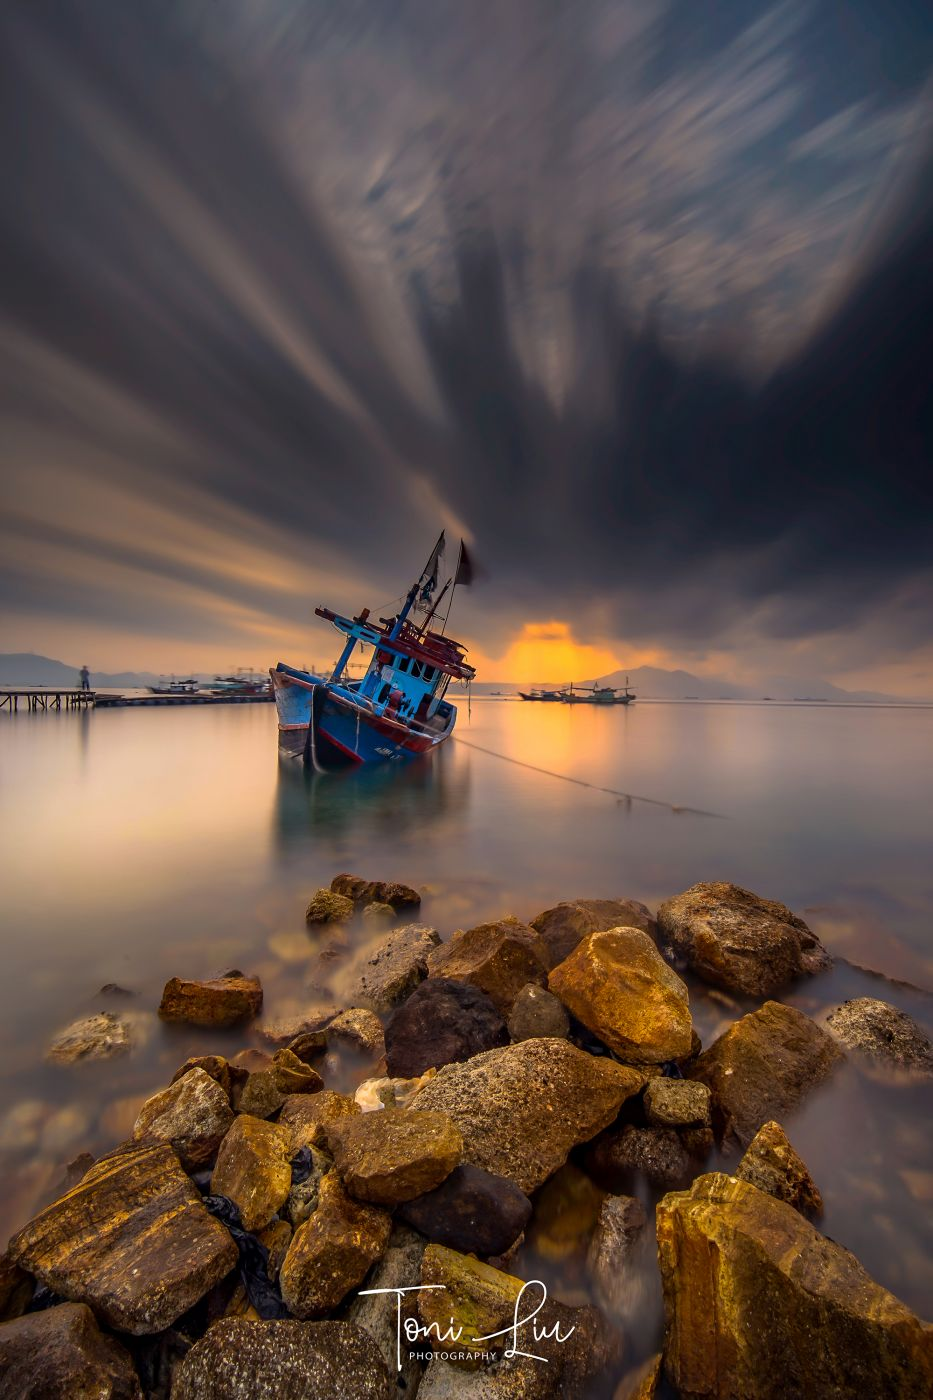 HARNAS BEACH WRECKED SHIP, Indonesia